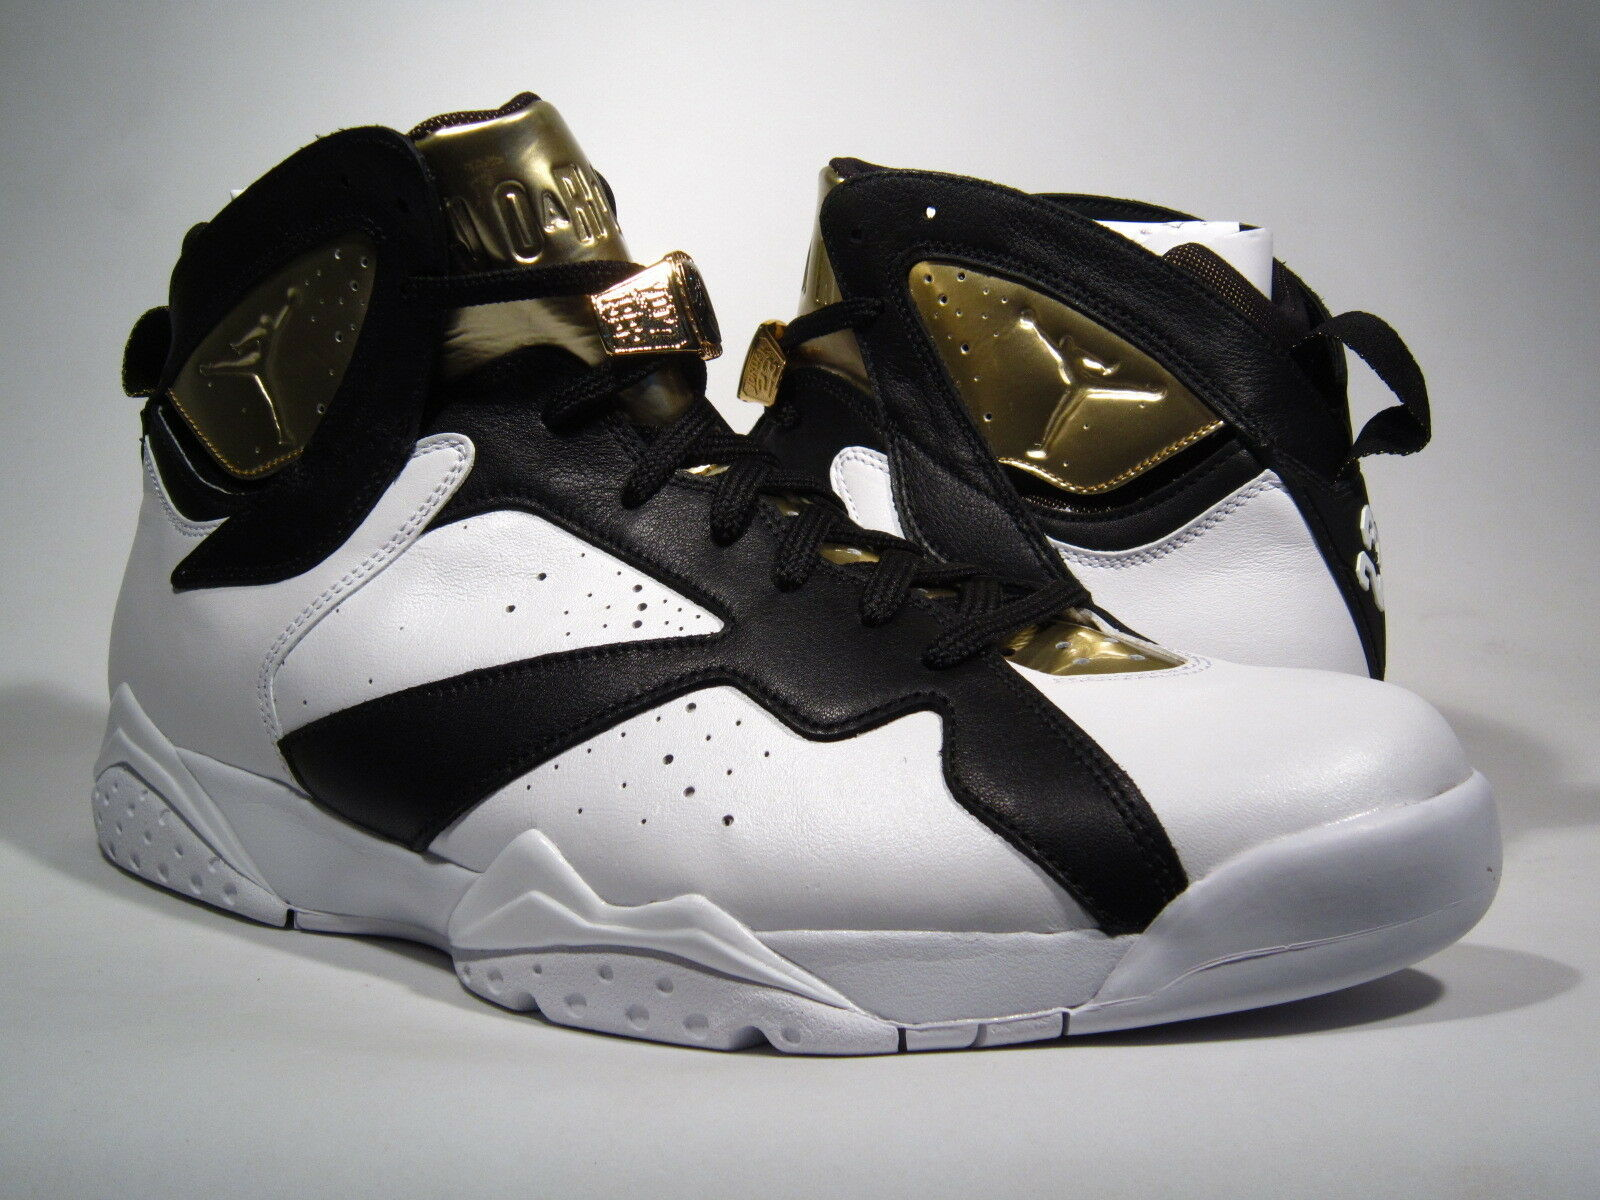 quality design 510fa 98059 ... new style brand new air jordan retro 8 14limited 7 champagne pack hombre  8 14limited retro